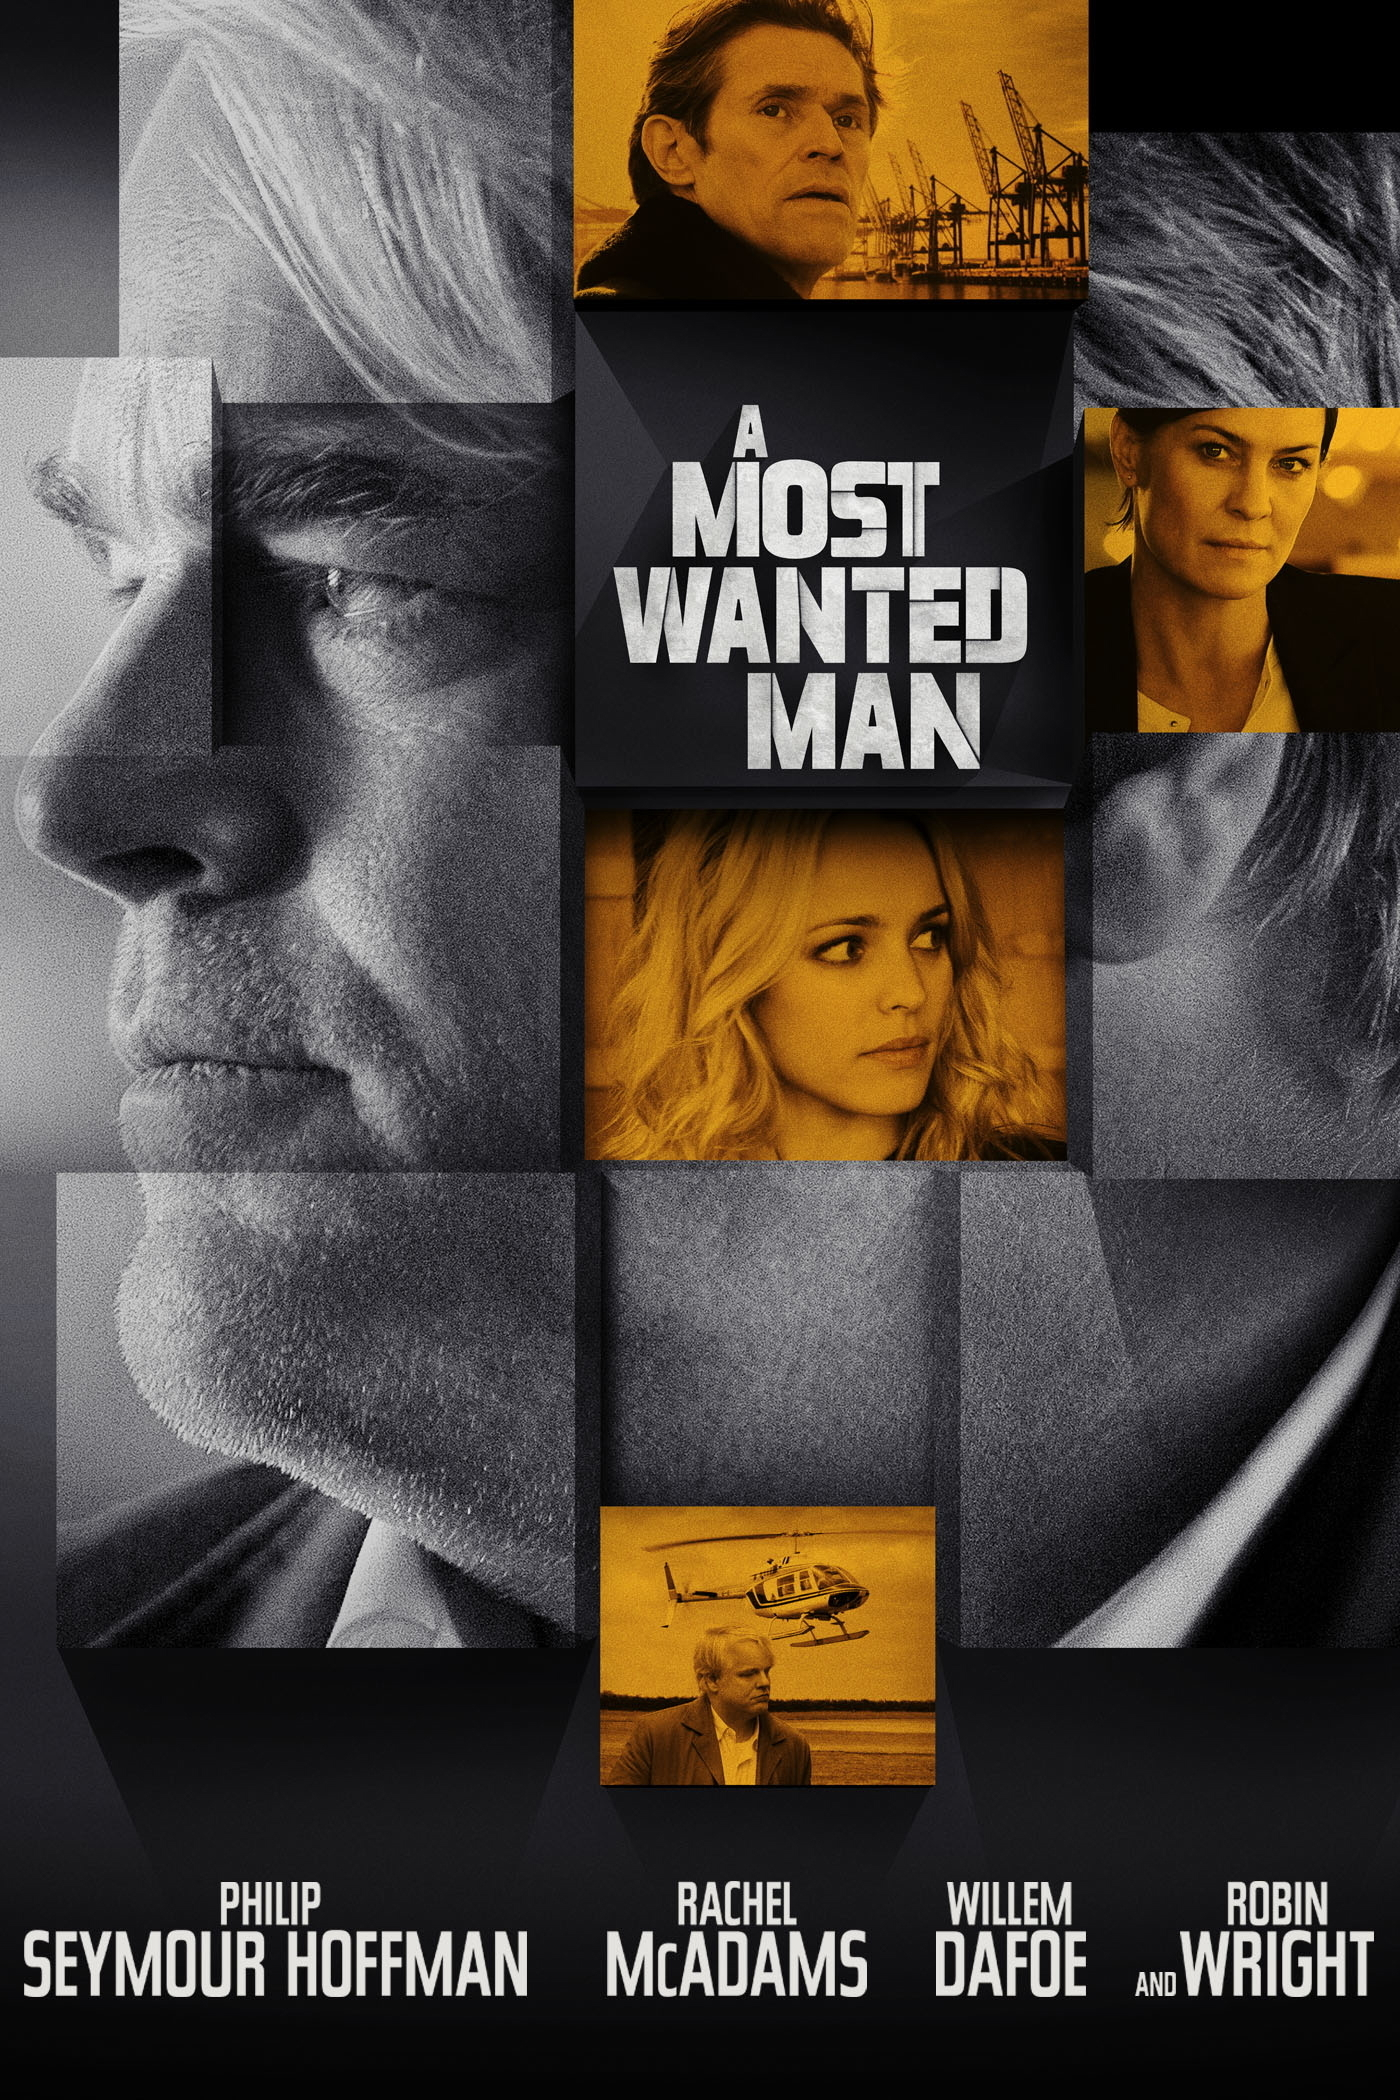 the most wanted man